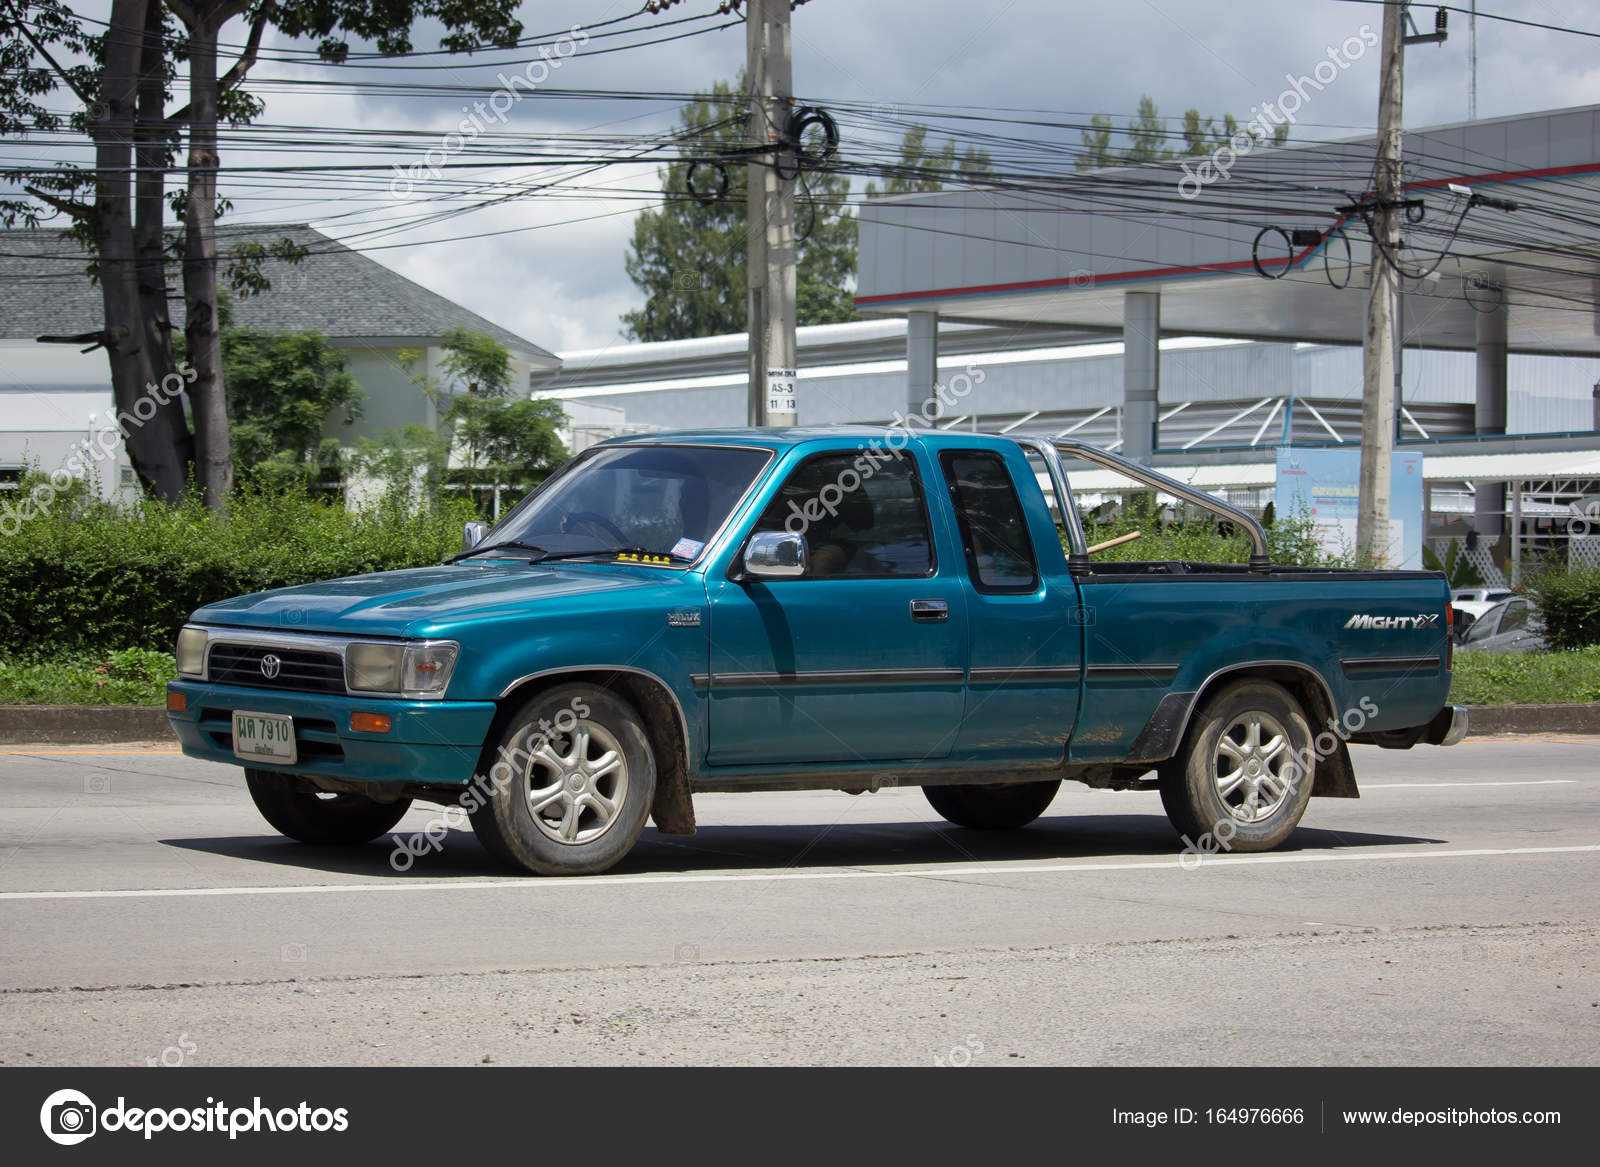 Private Old Pickup Car Toyota Hilux Mighty X Stock Editorial Photo C Nitinut380 164976666